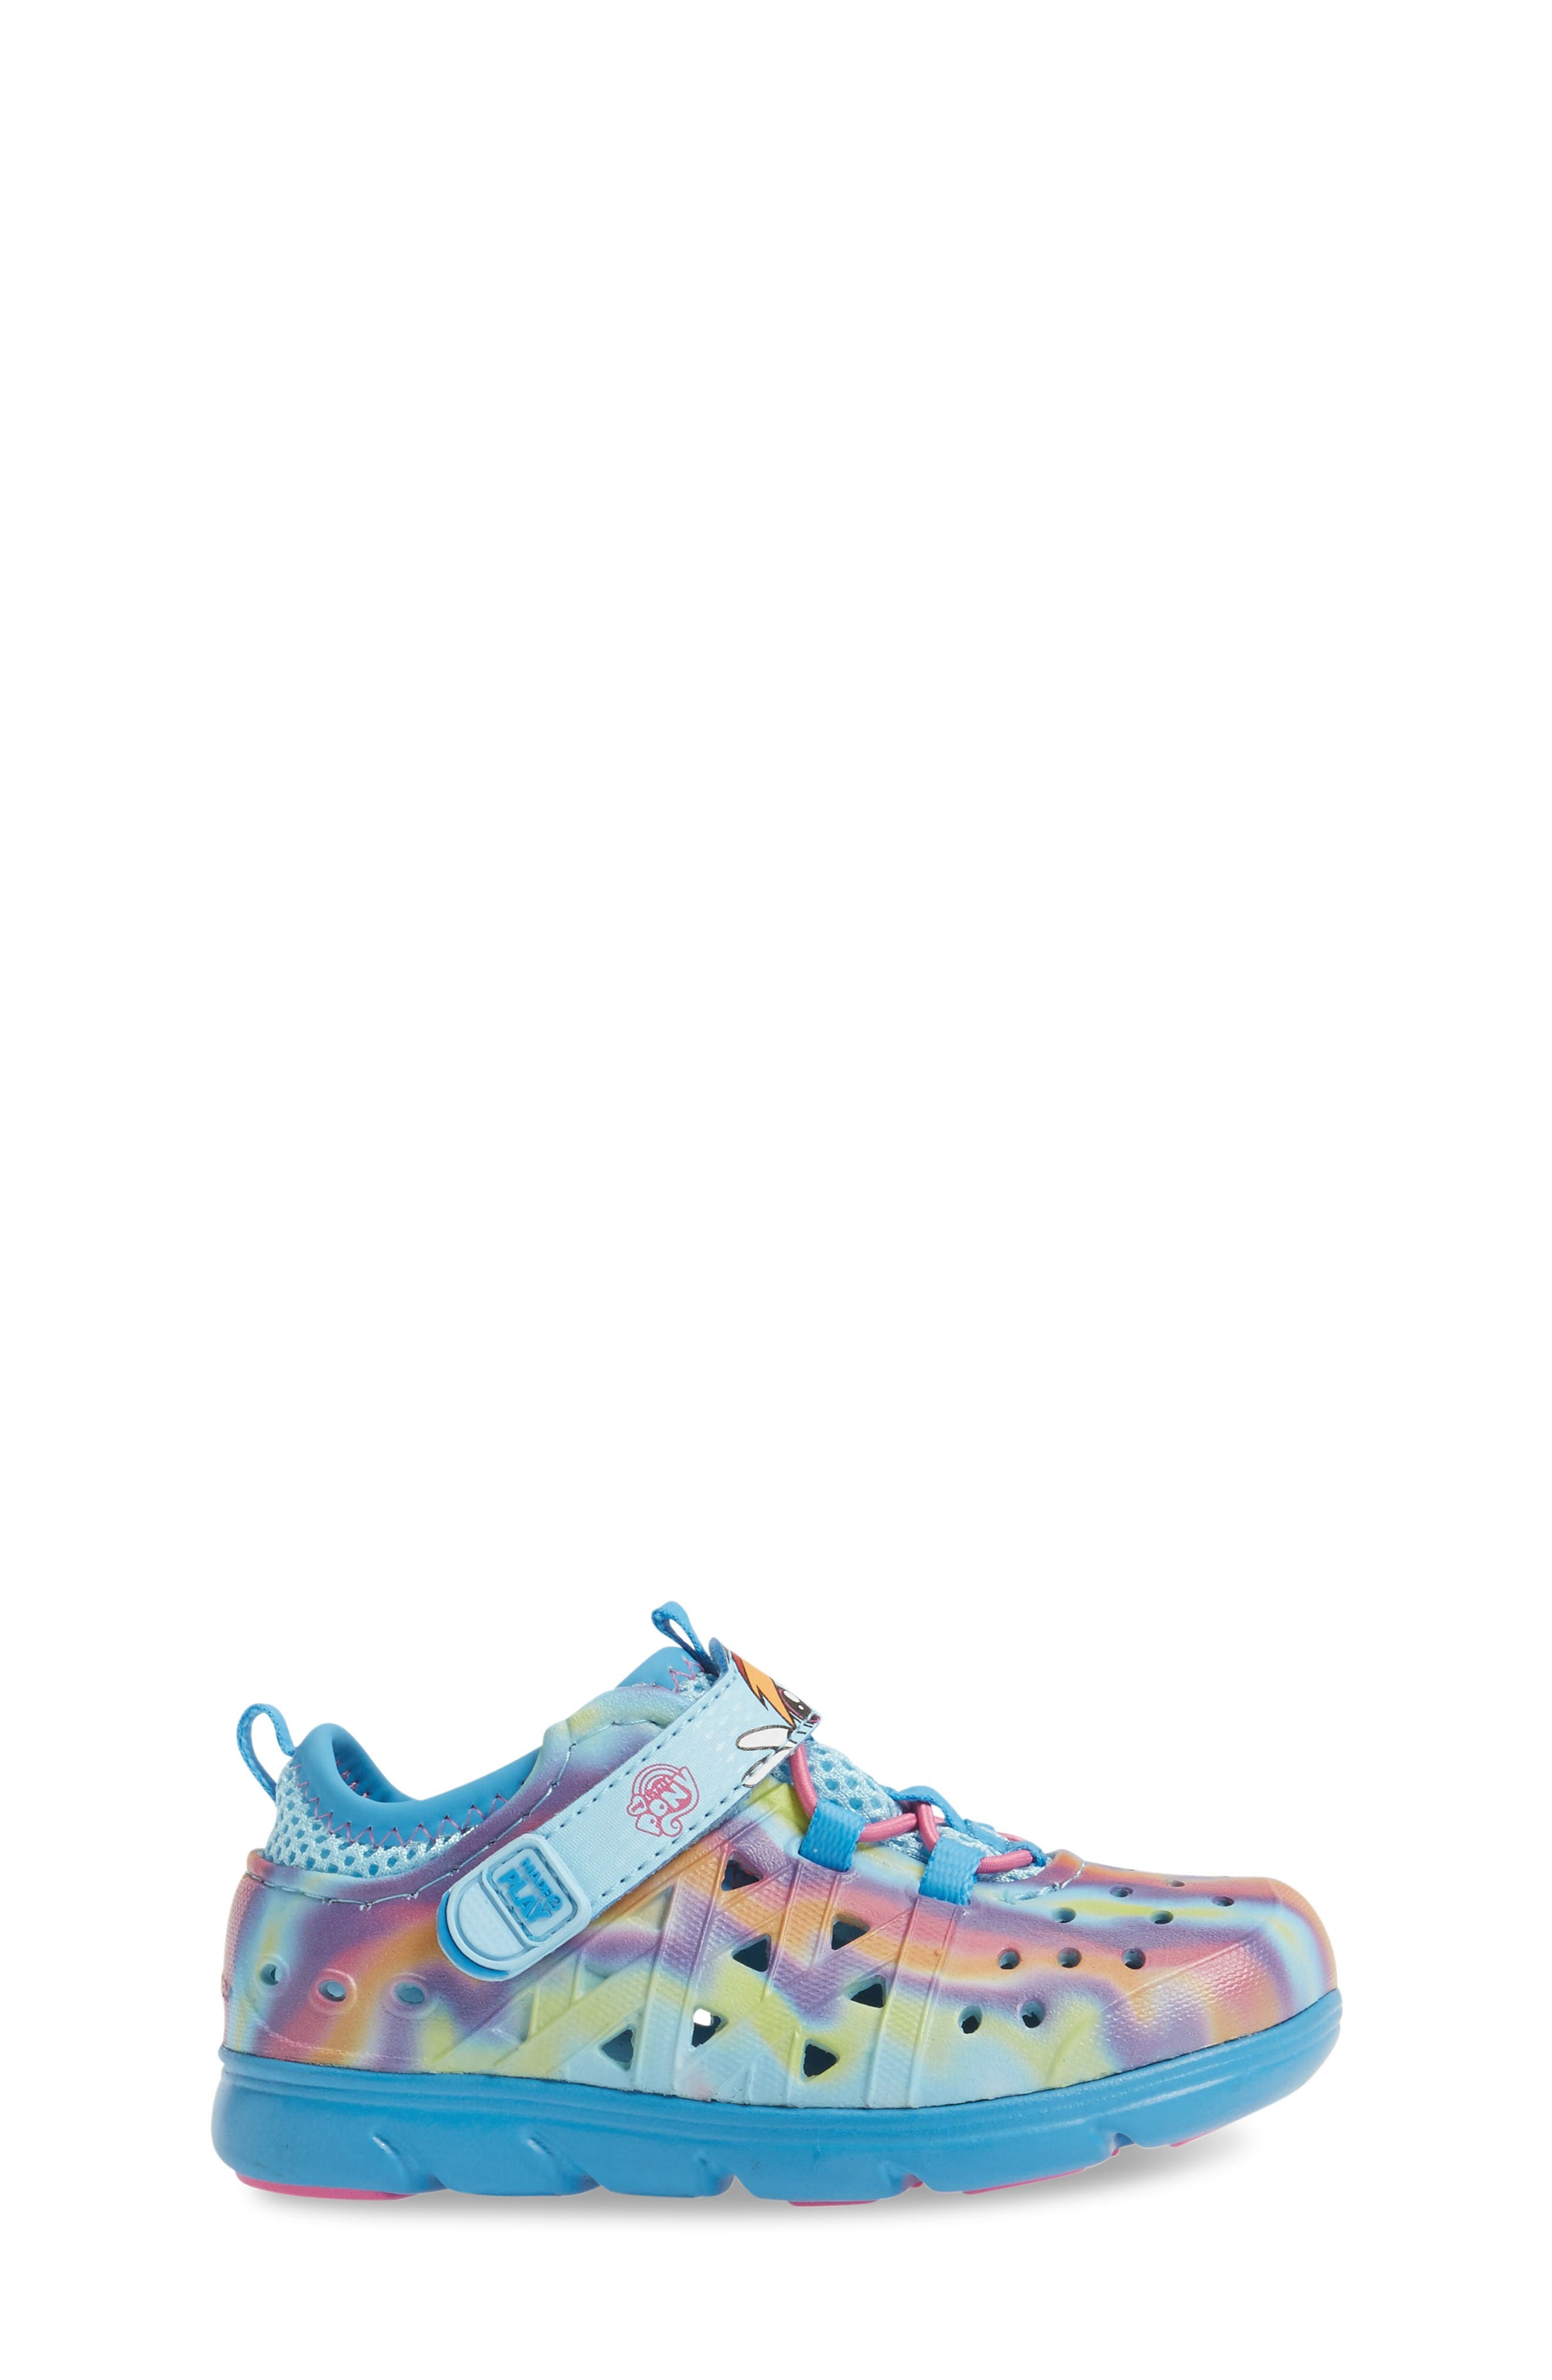 Made2Play<sup>®</sup> My Little Pony<sup>™</sup> Phibian Sneaker,                             Alternate thumbnail 3, color,                             Rainbow Turquoise